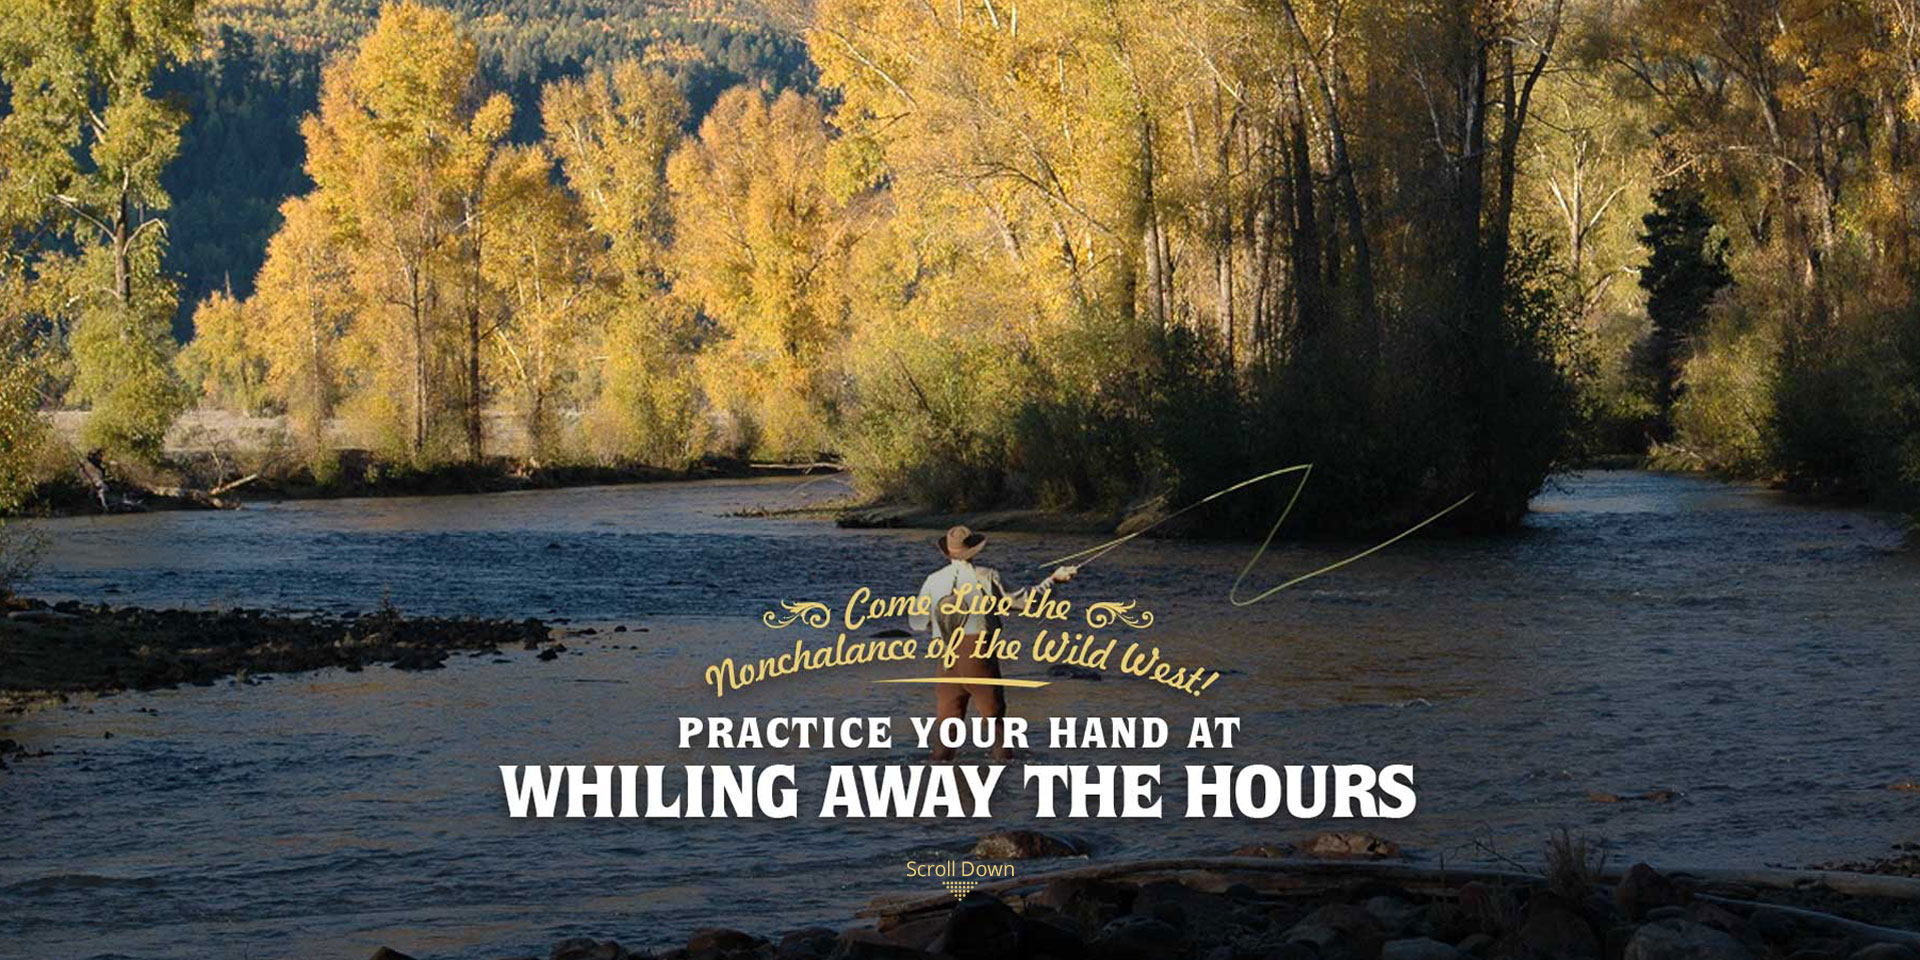 Practice your Hand at Whiling Away the Hours